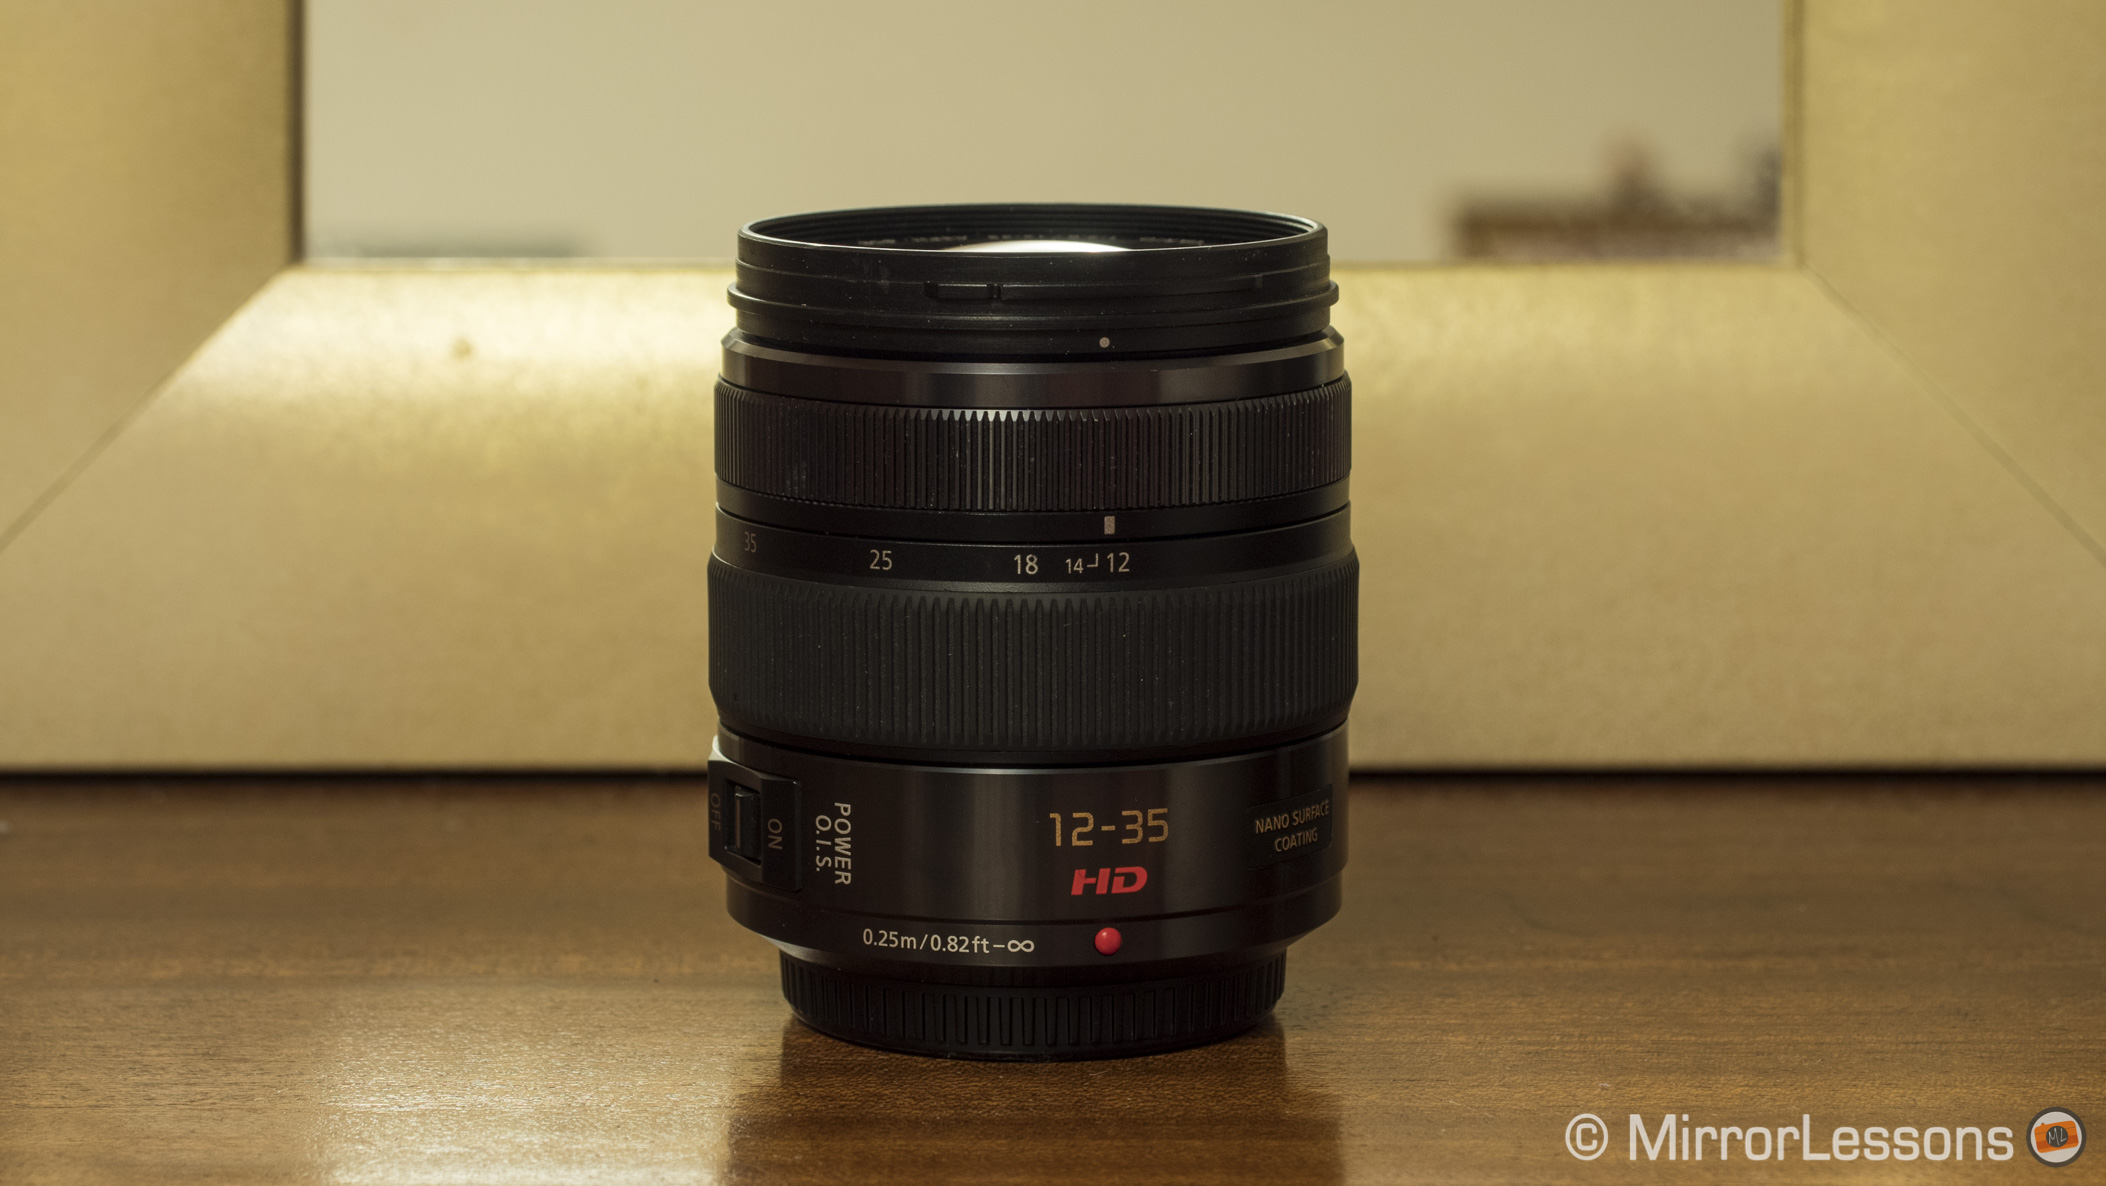 panasonic 12-35mm f/2.8 review